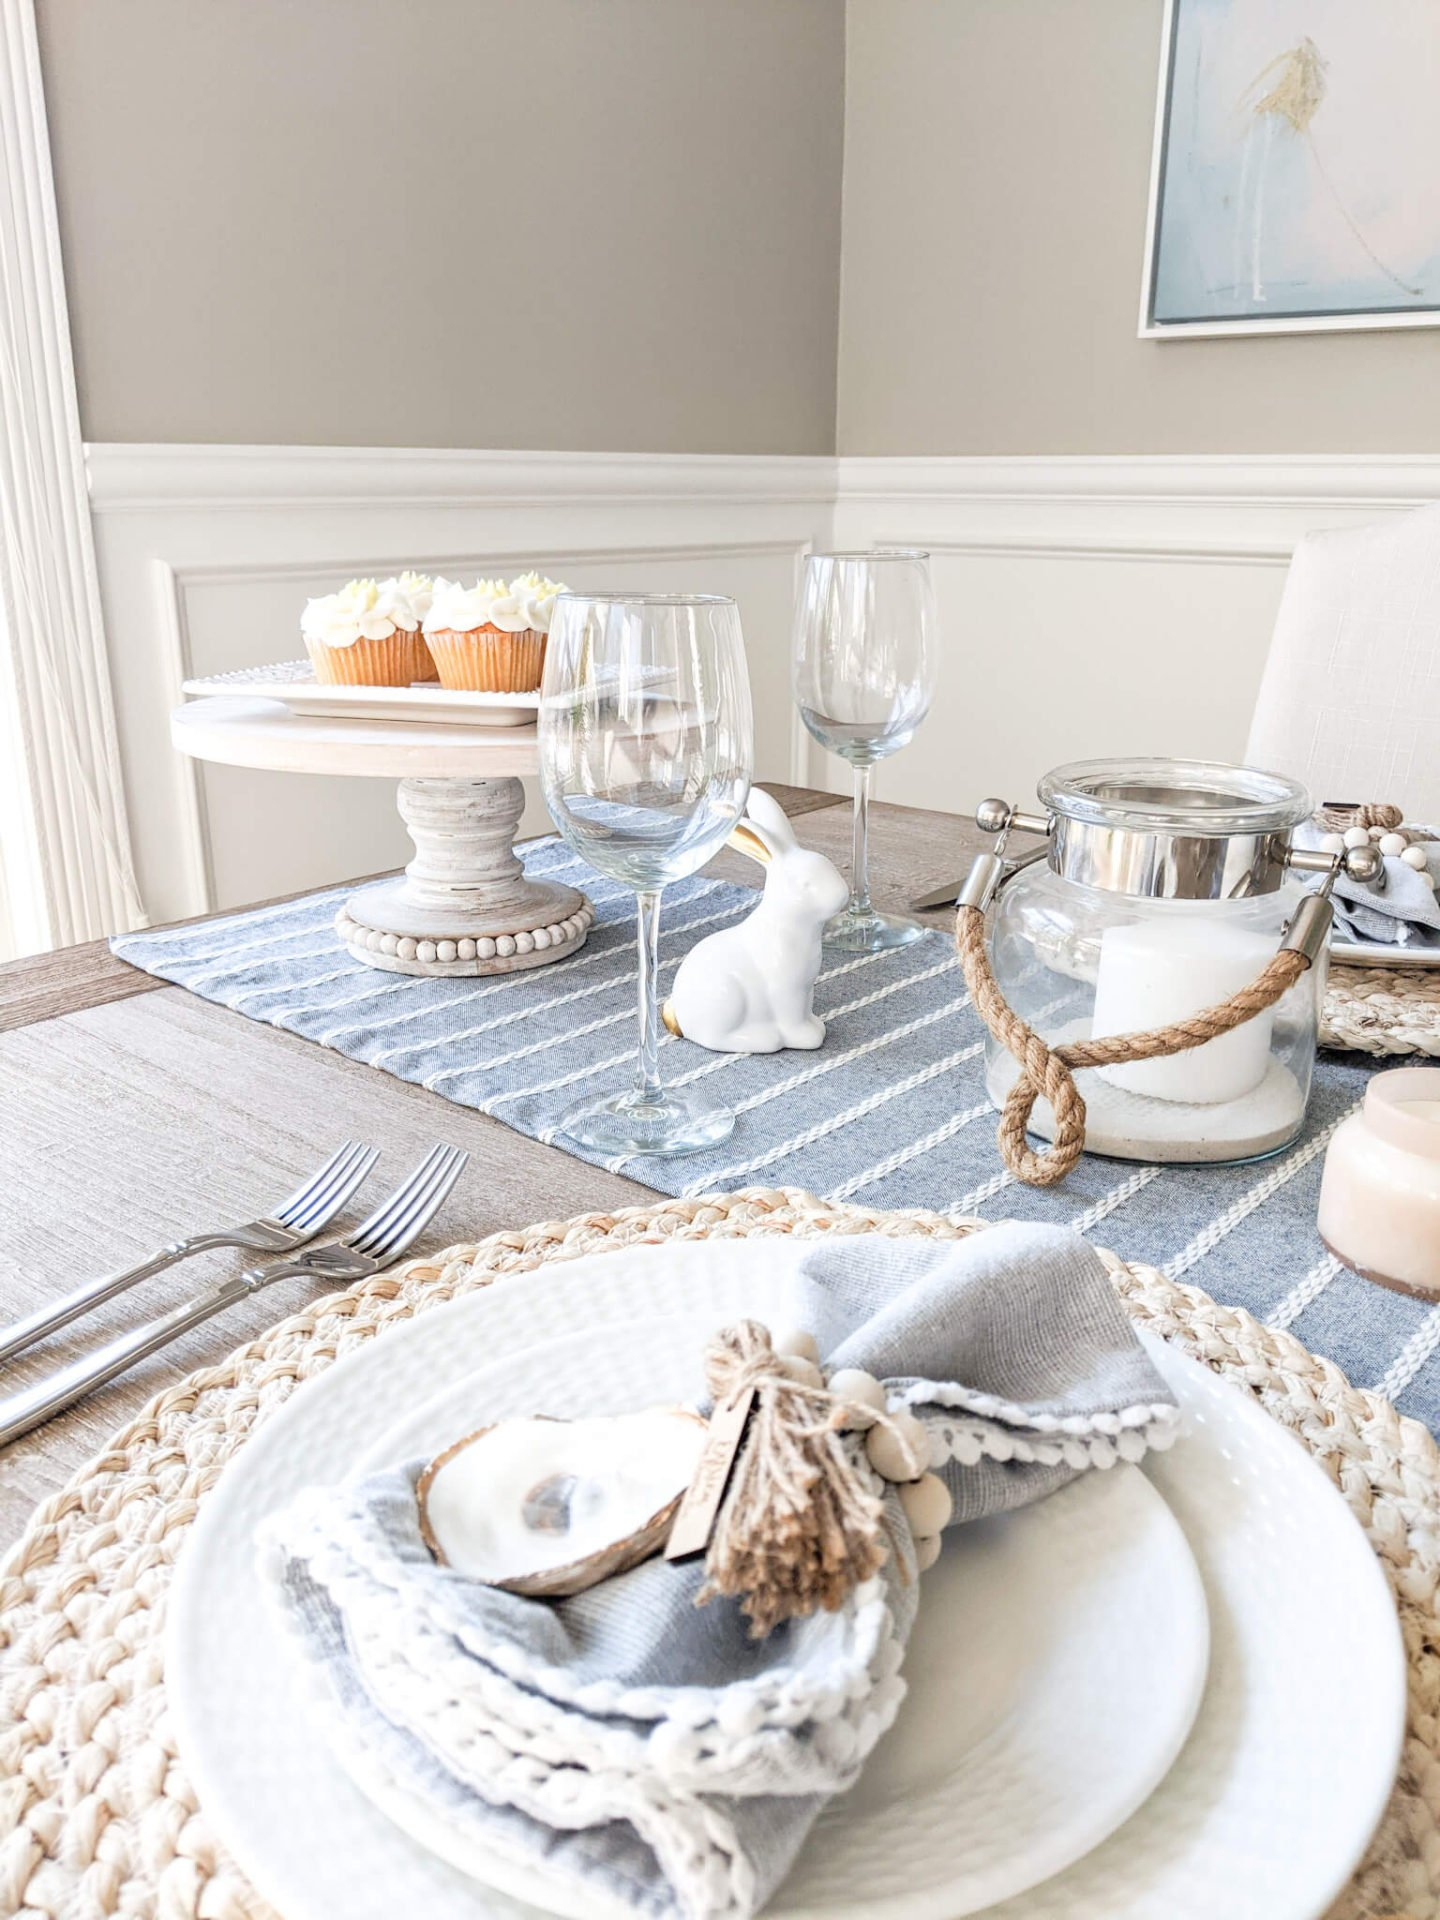 Cake stand on dining room table